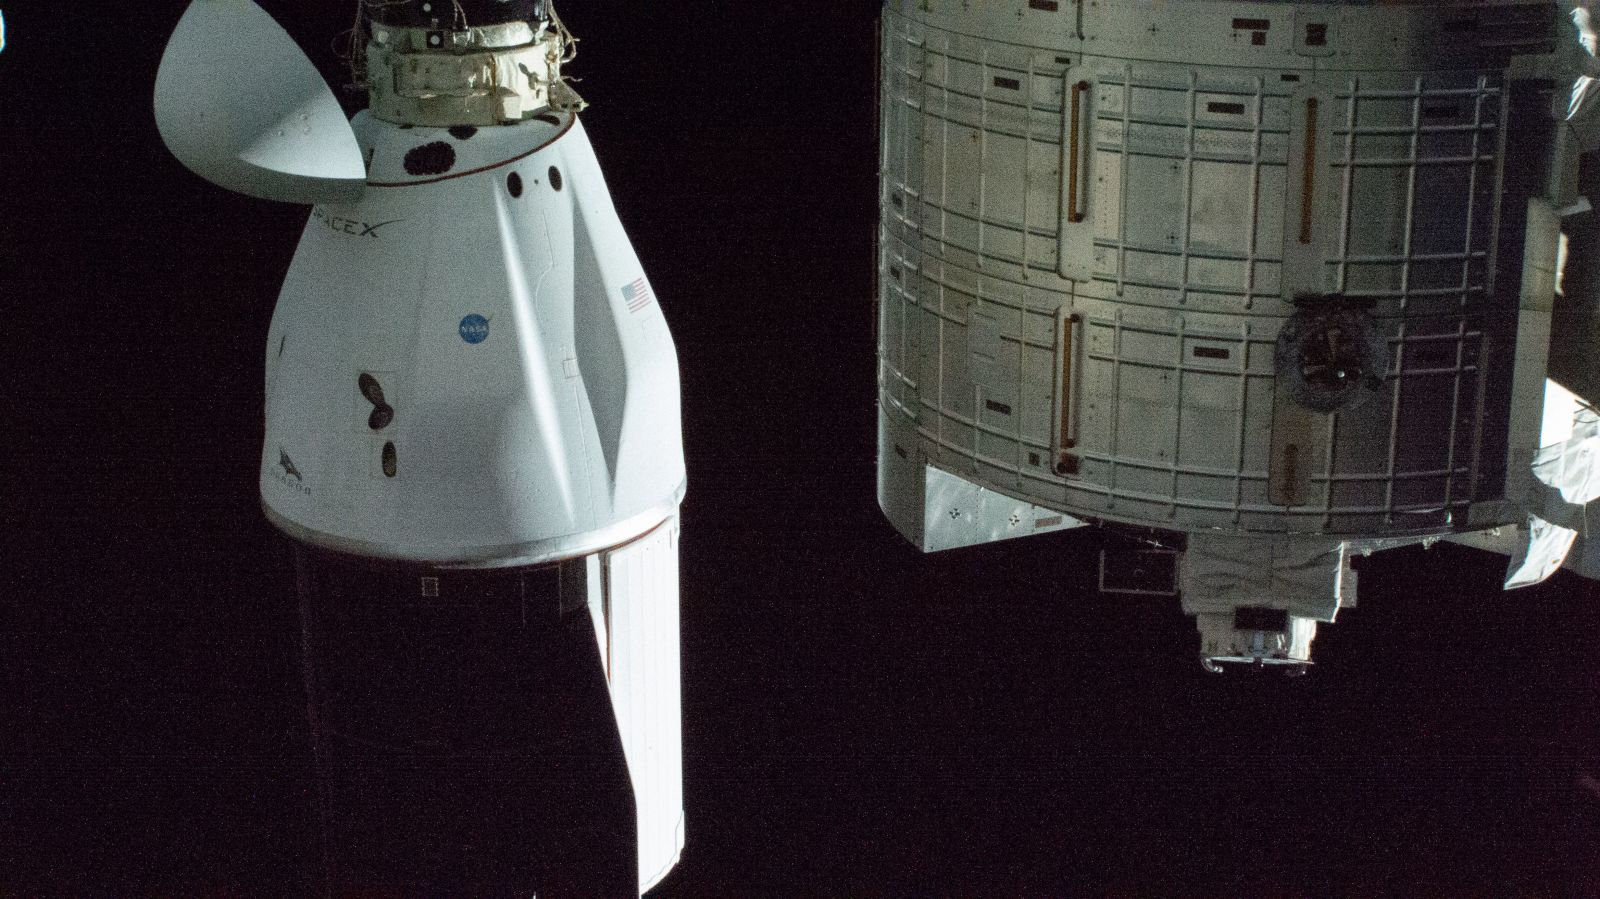 The CRS-21 Dragon spacecraft seen docked to the space-facing port of the Harmony module. Credit: NASA